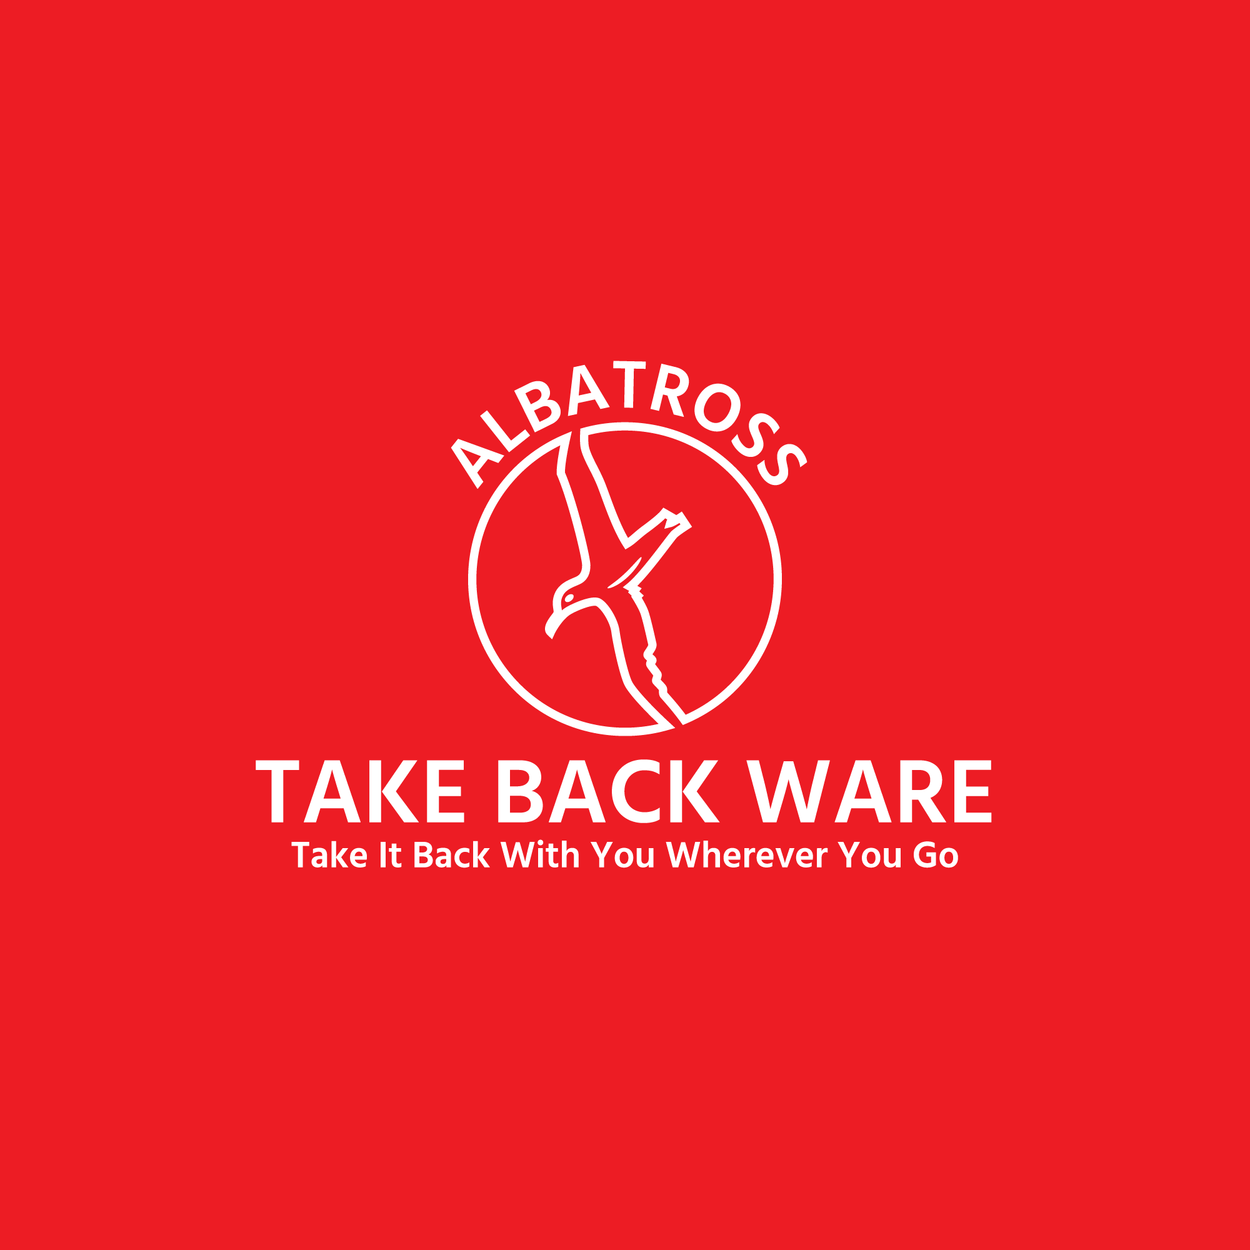 3 Sets of Take Back Ware